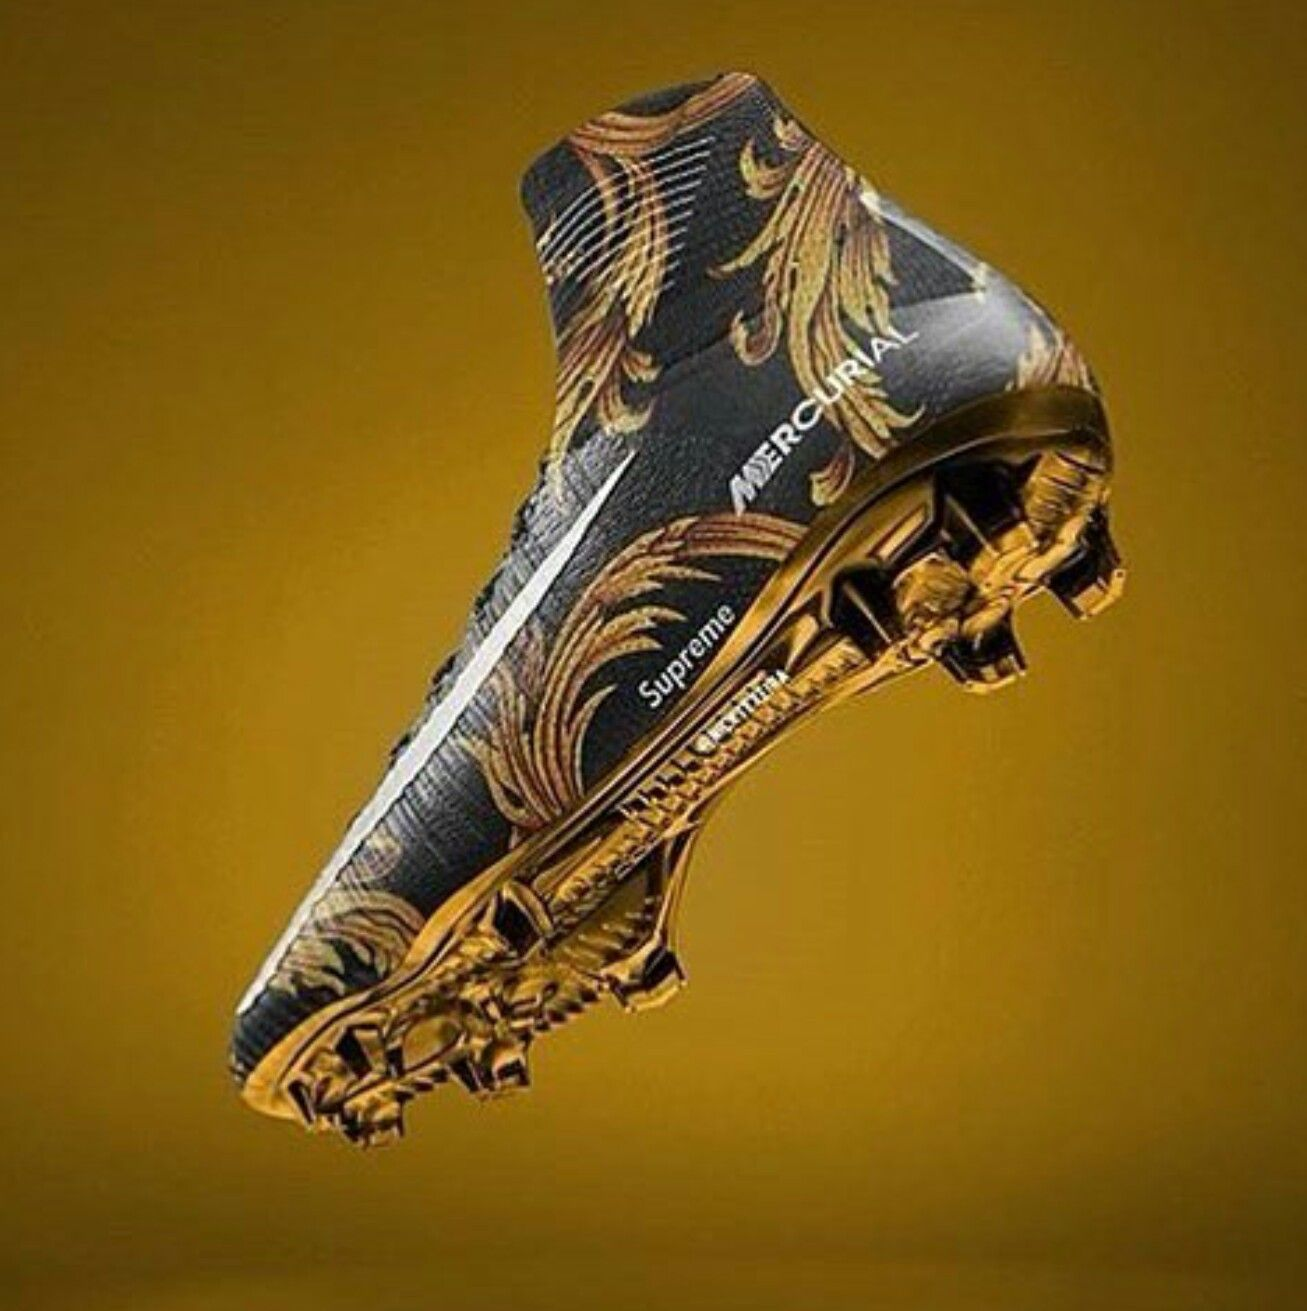 Holy crap   Soccer   Pinterest   Football boots, Soccer and Soccer boots 5b8789600d2